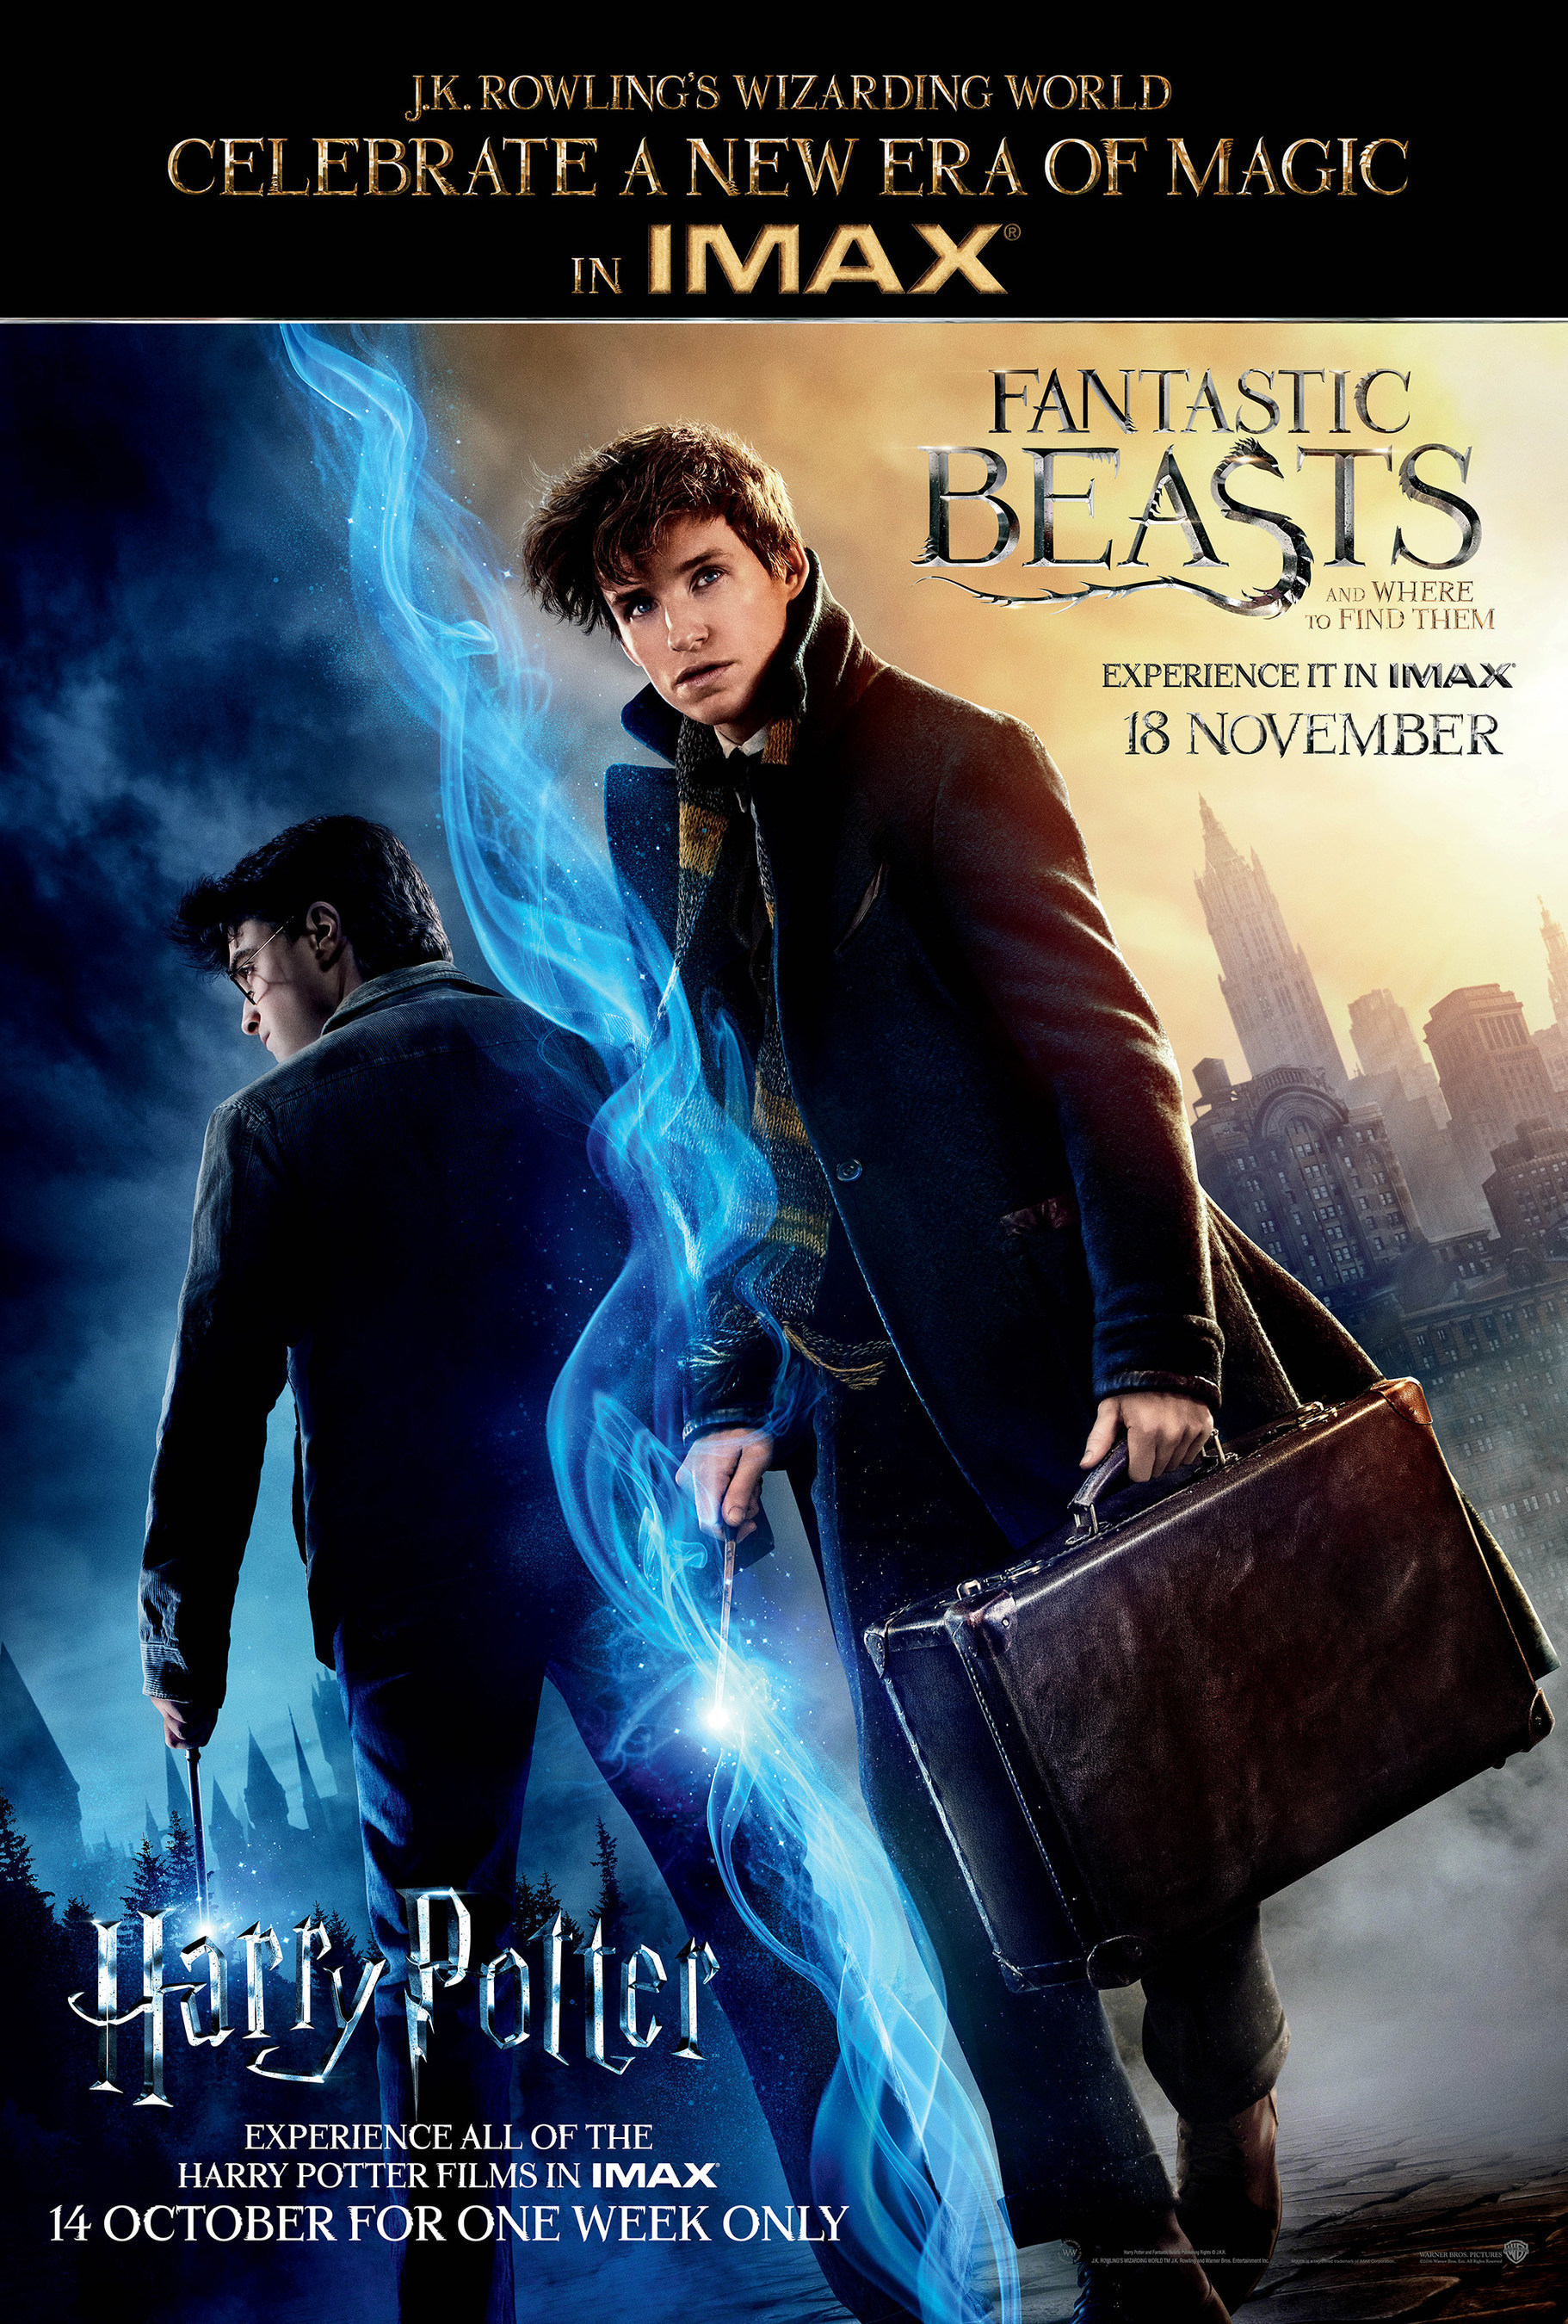 Warner Bros. Pictures' Entire Harry Potter Franchise To Be Released In IMAX(R) Theatres For Exclusive One-Week Engagement Beginning Oct. 13